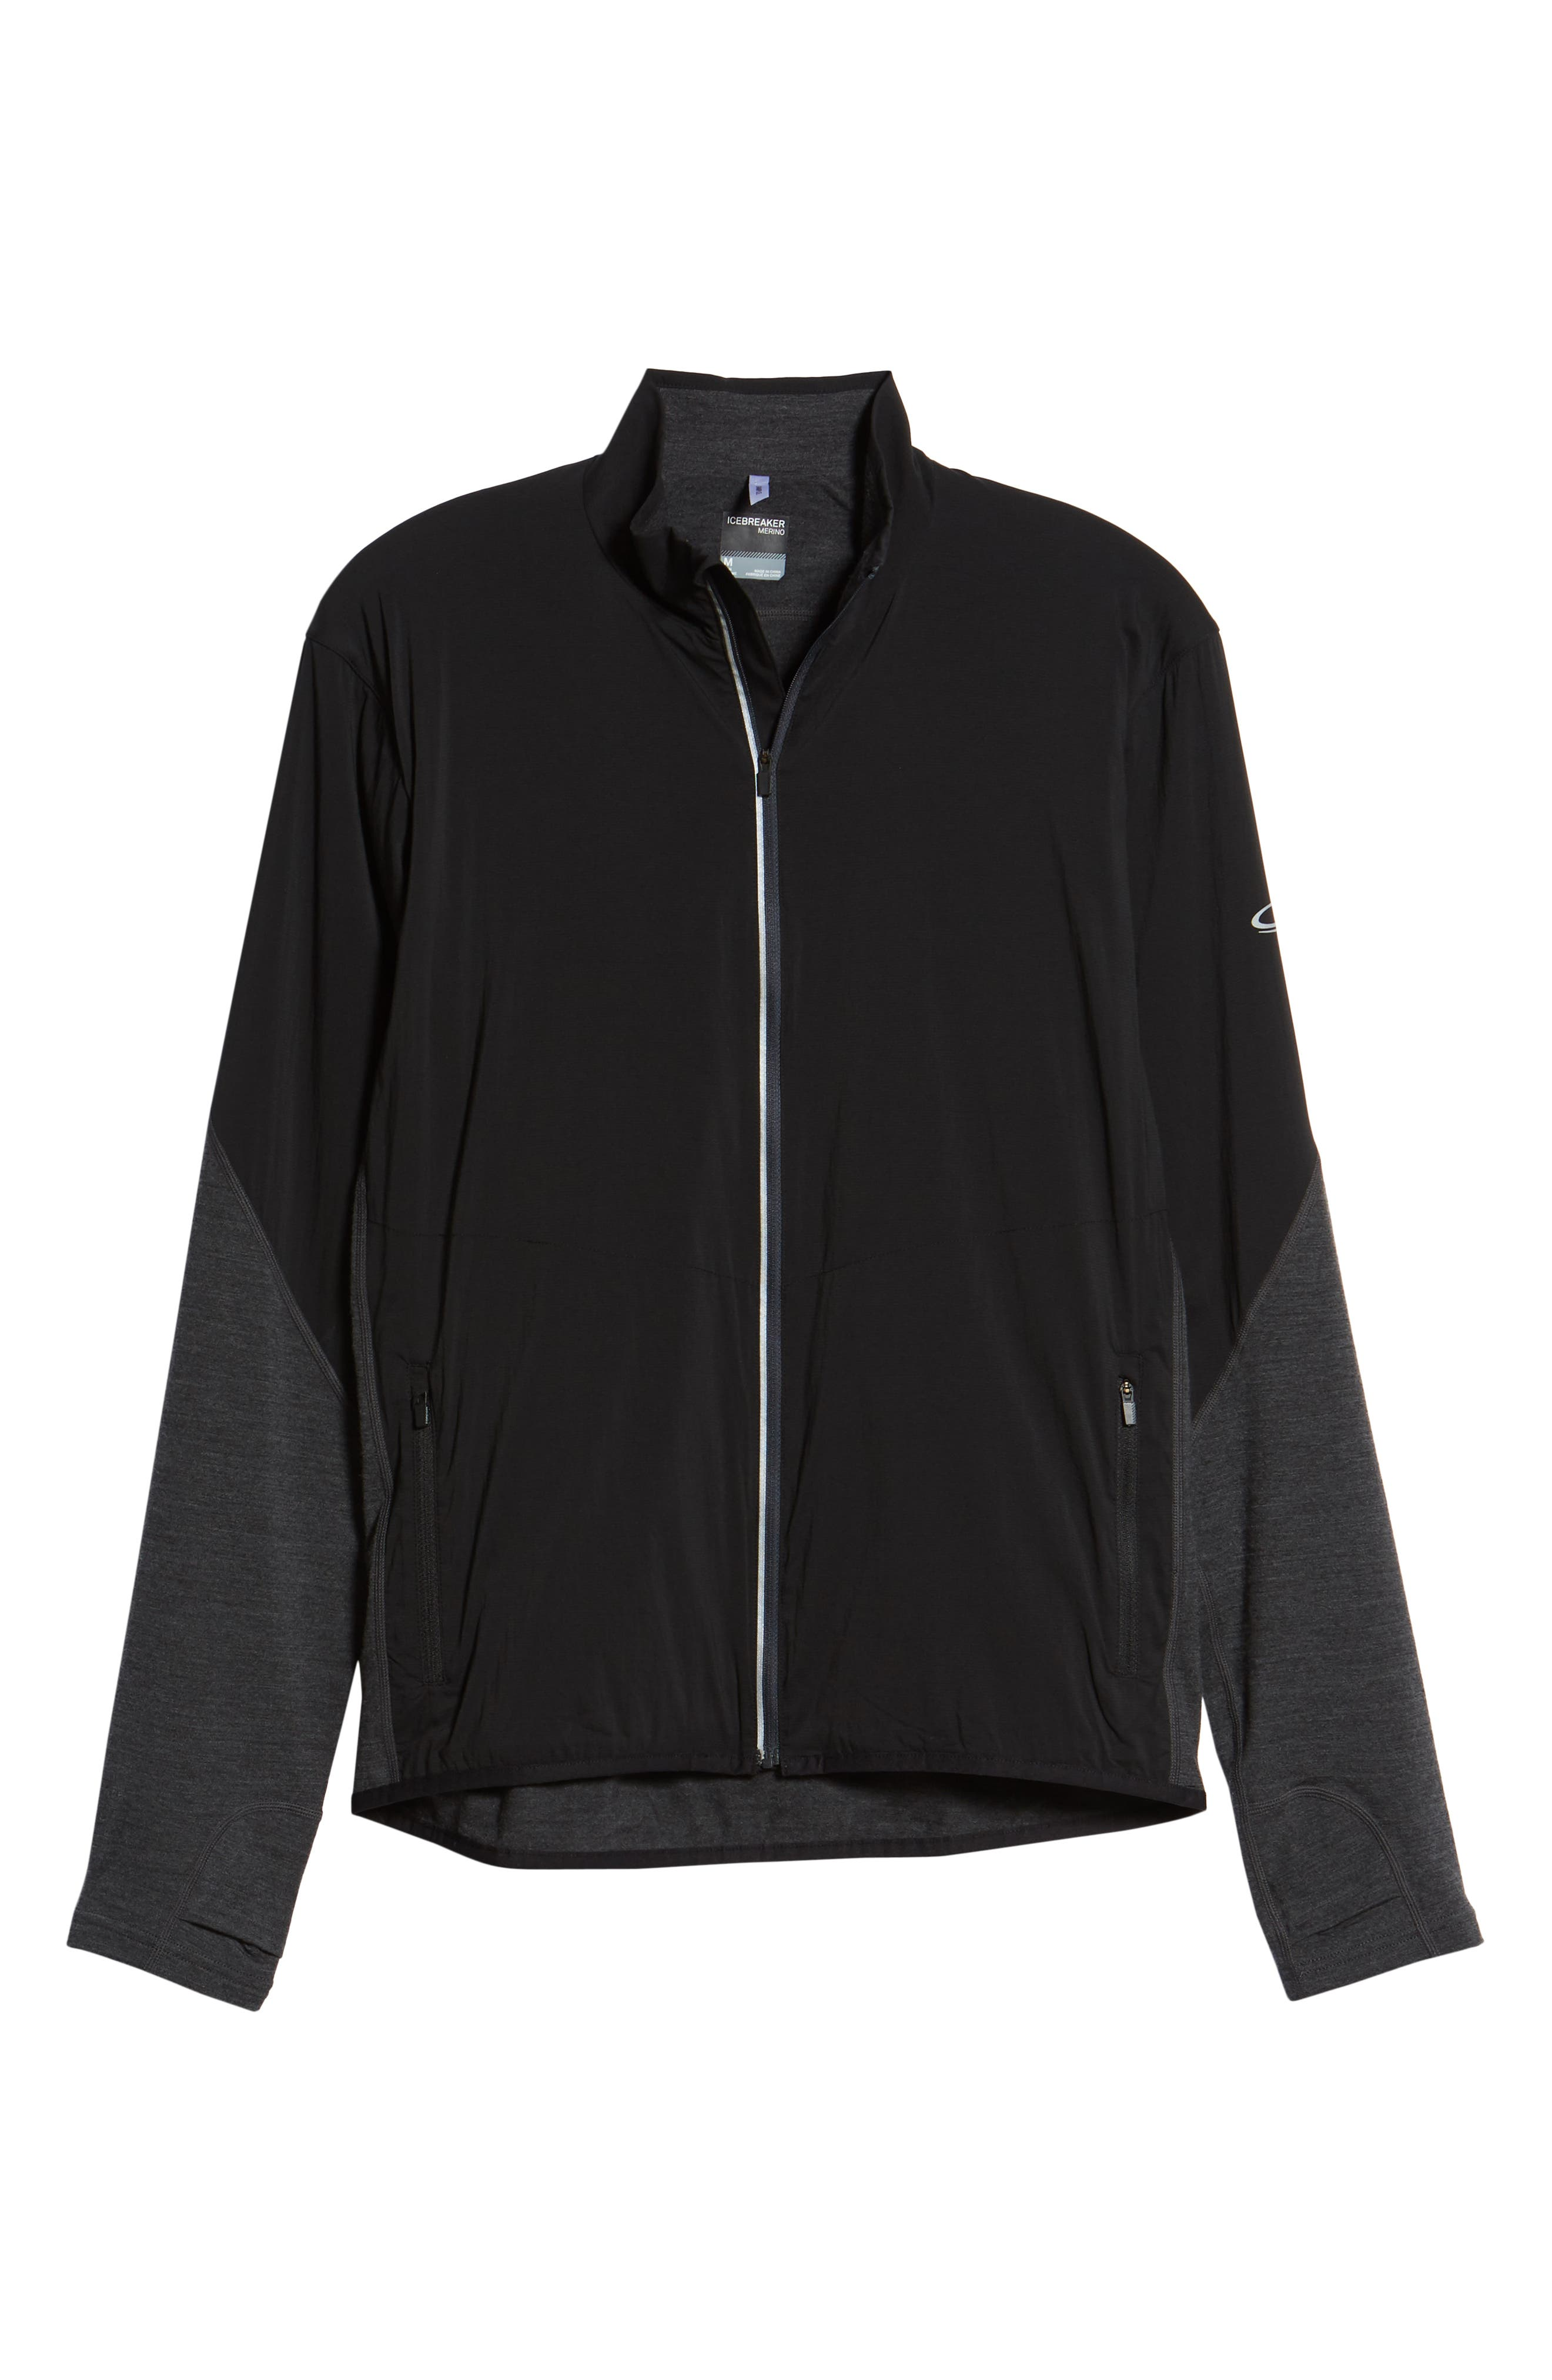 Tech Trainer Hybrid Jacket,                             Alternate thumbnail 5, color,                             BLACK